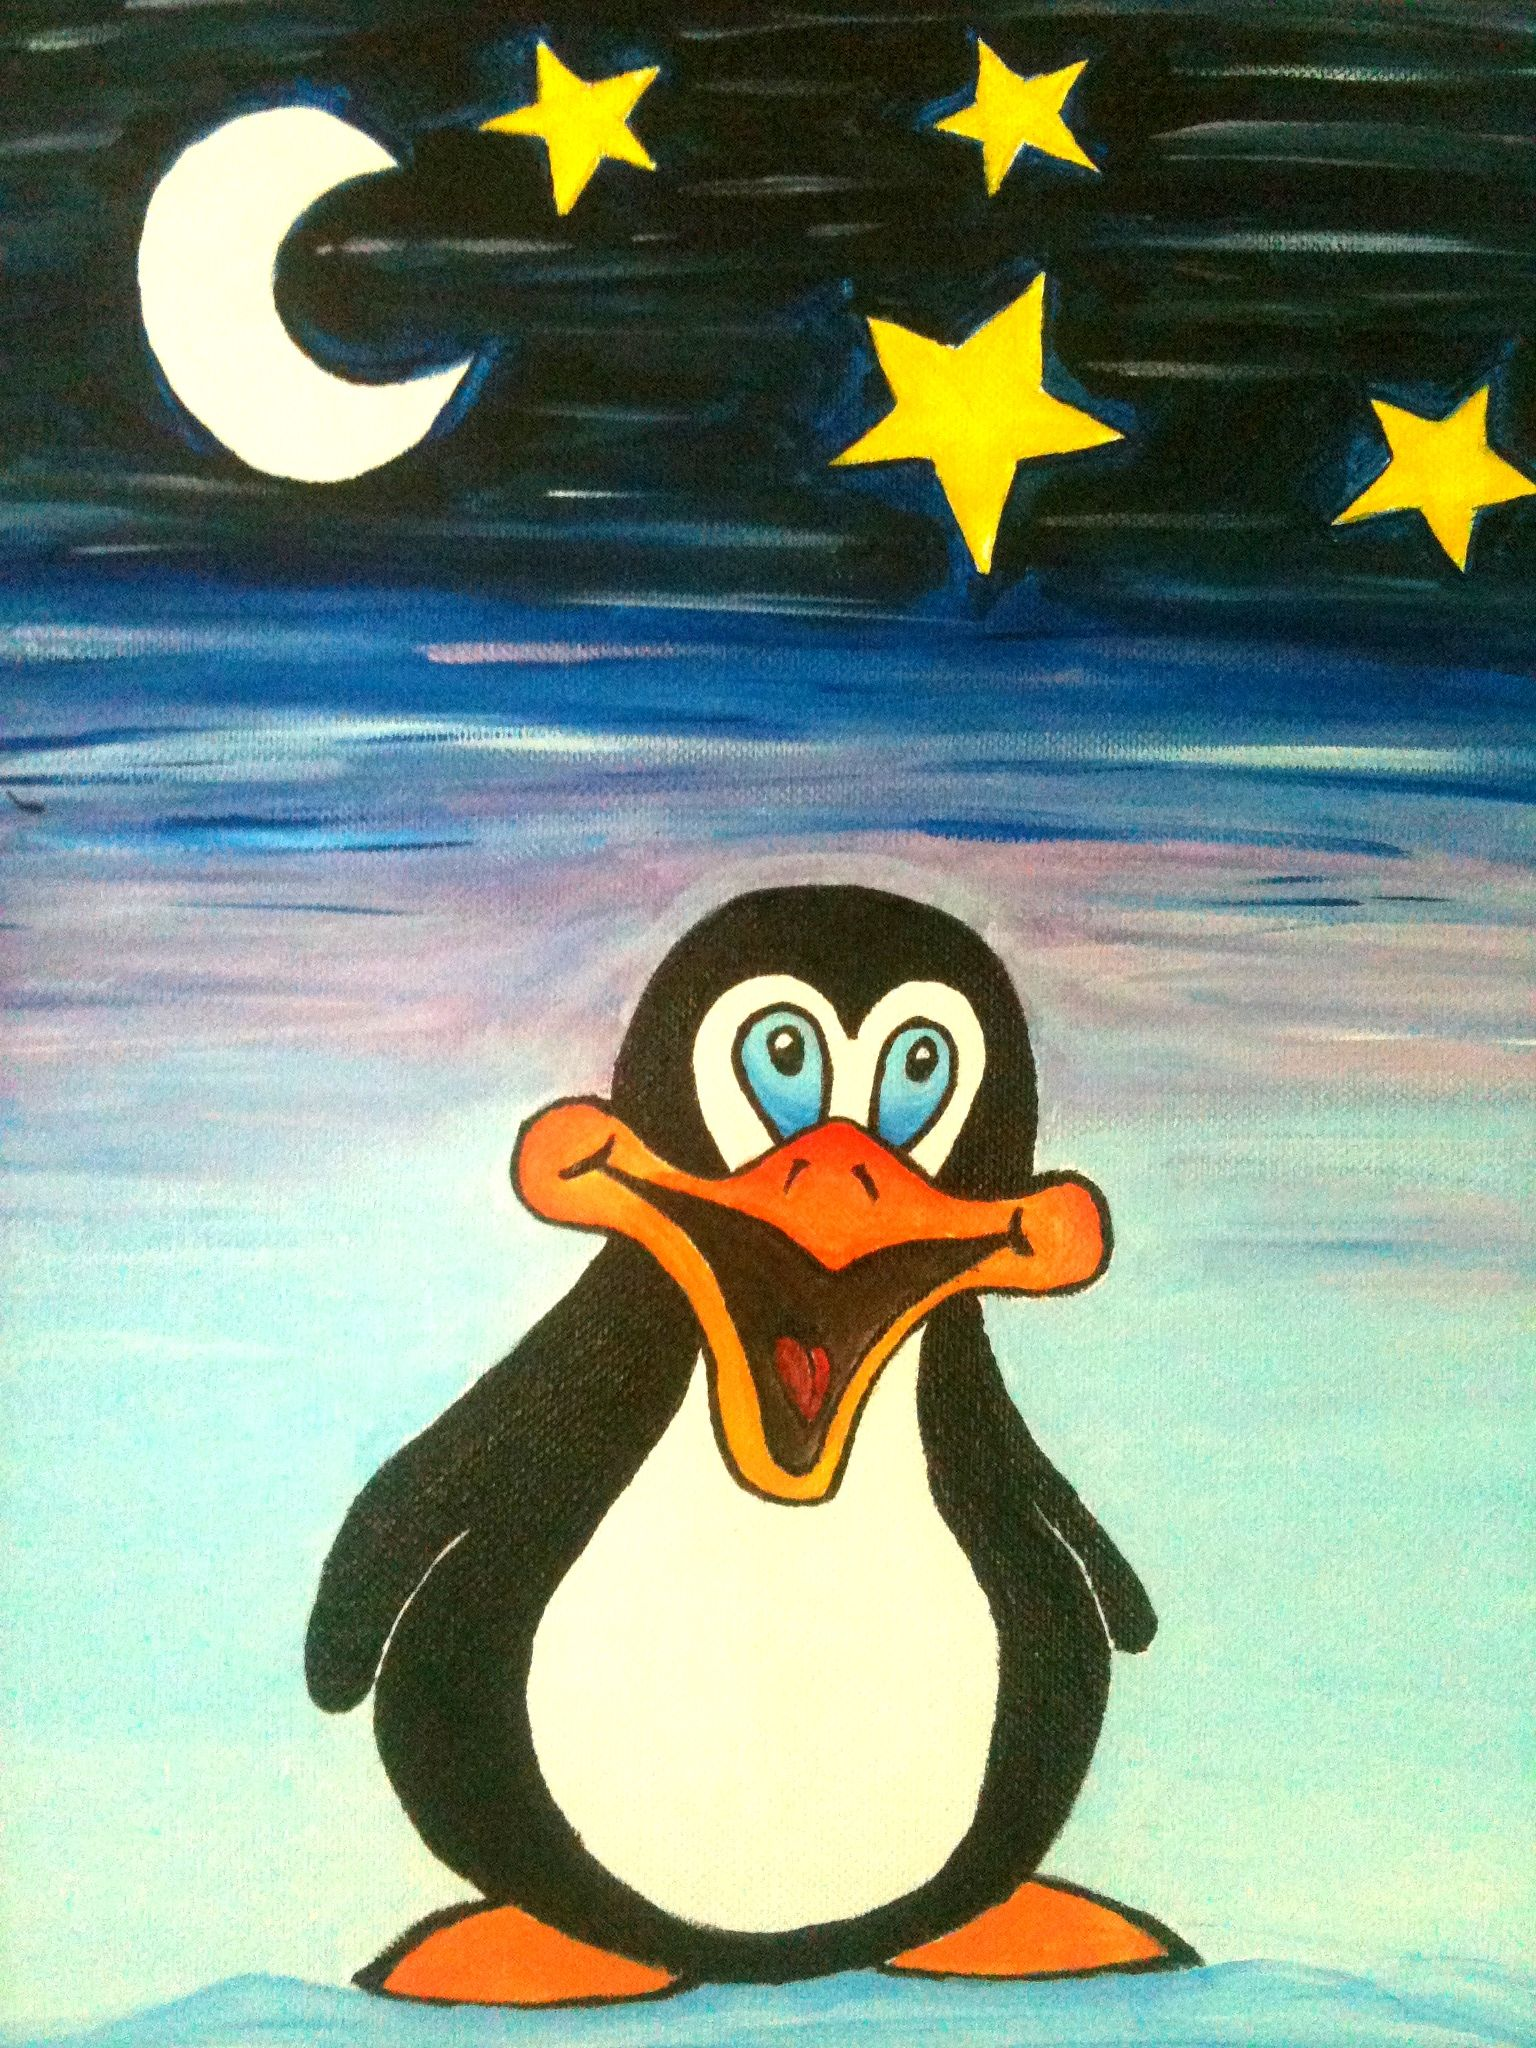 Made this for a friend who is obsessed with penguins :)